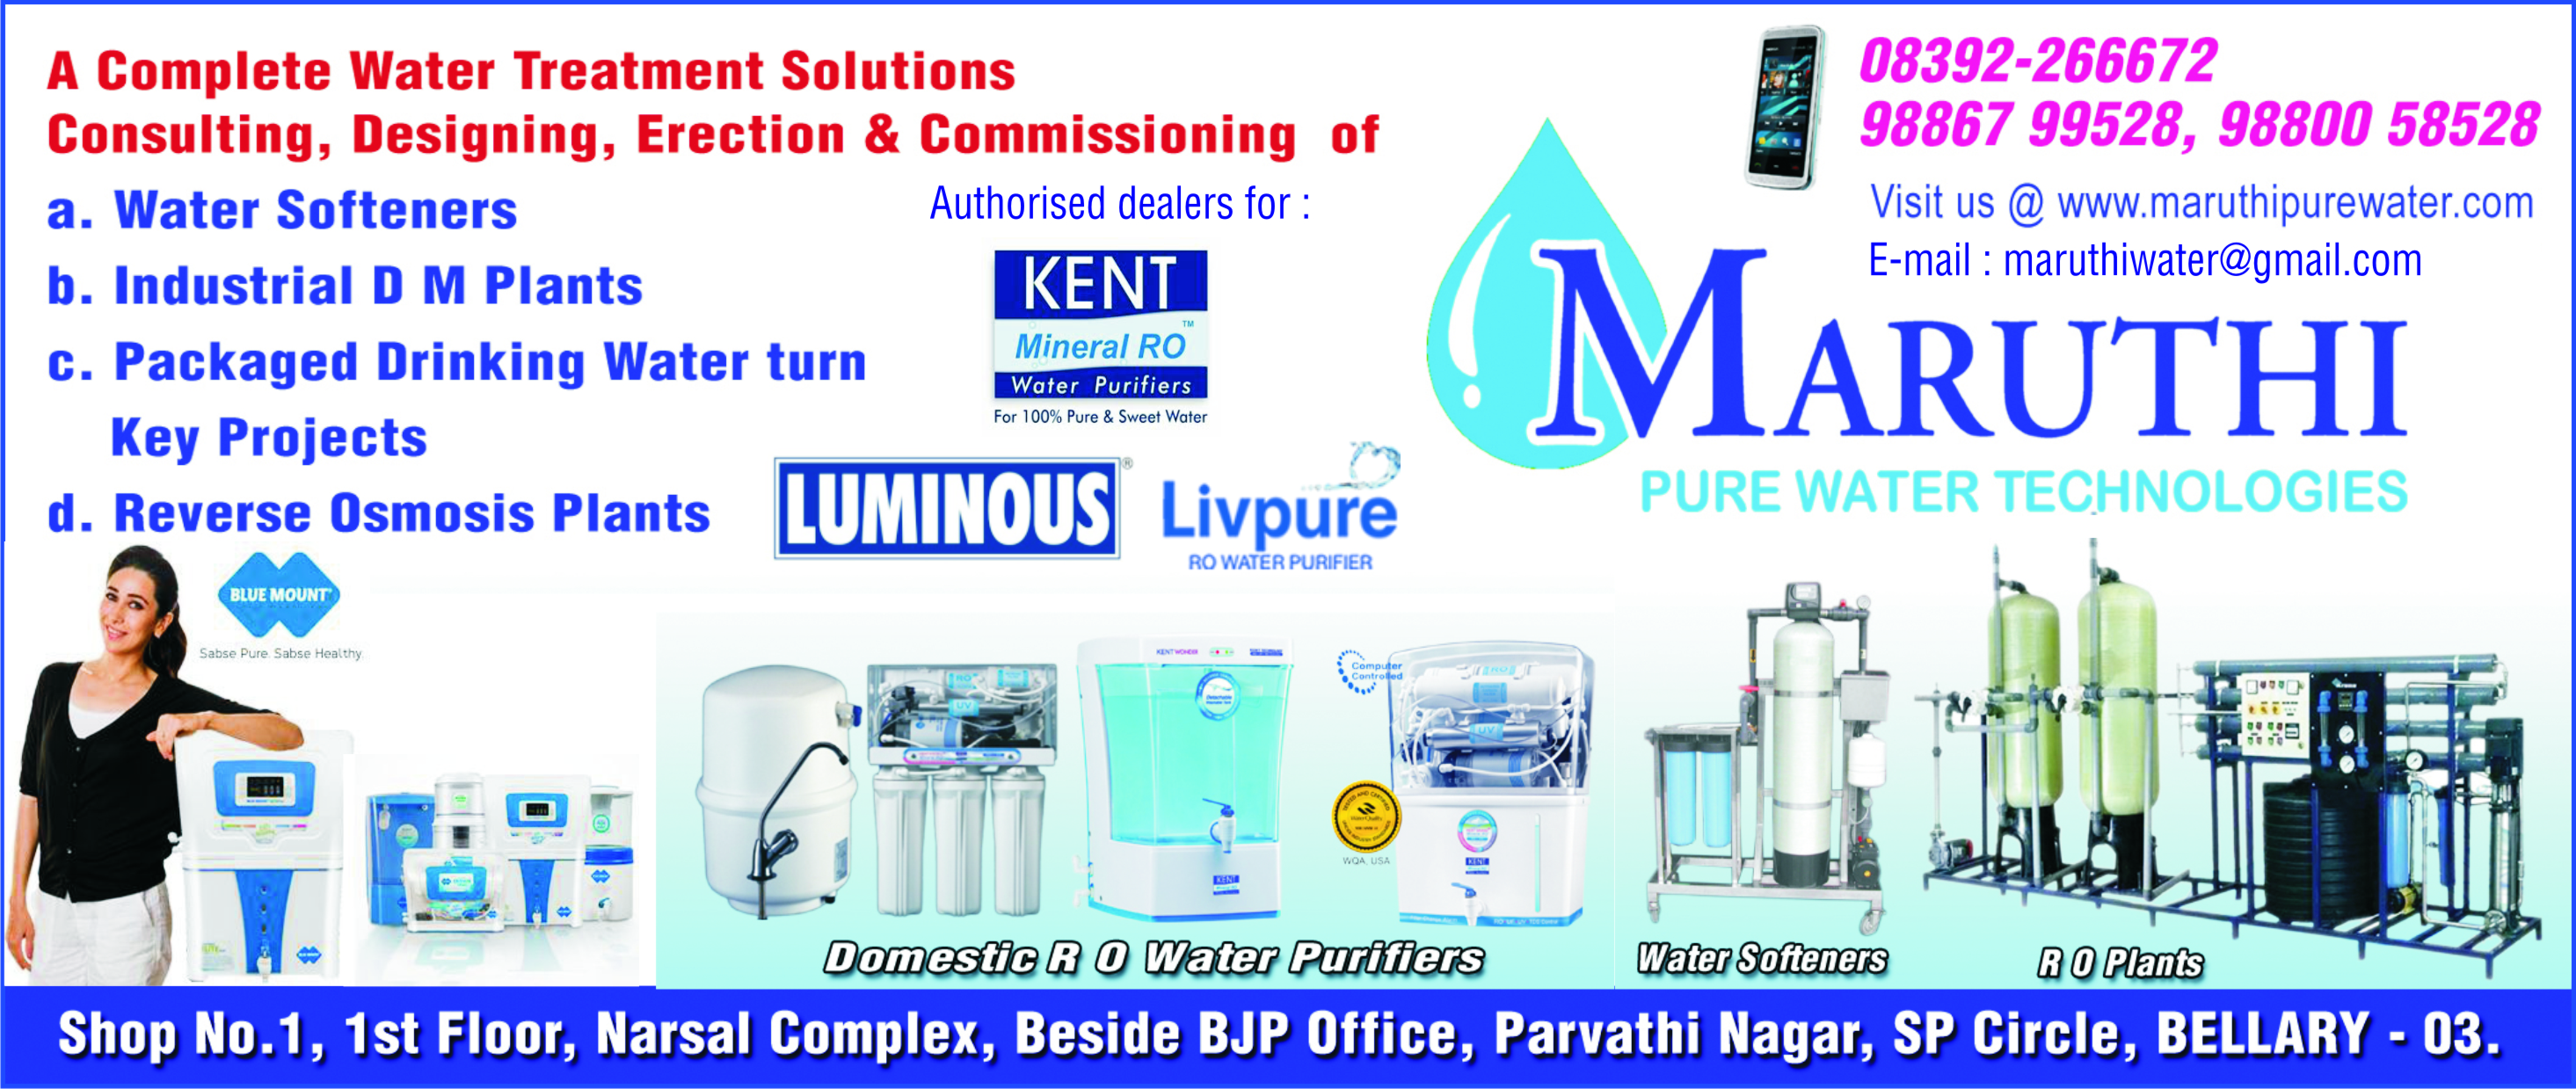 Maruthi Pure Water Technologies